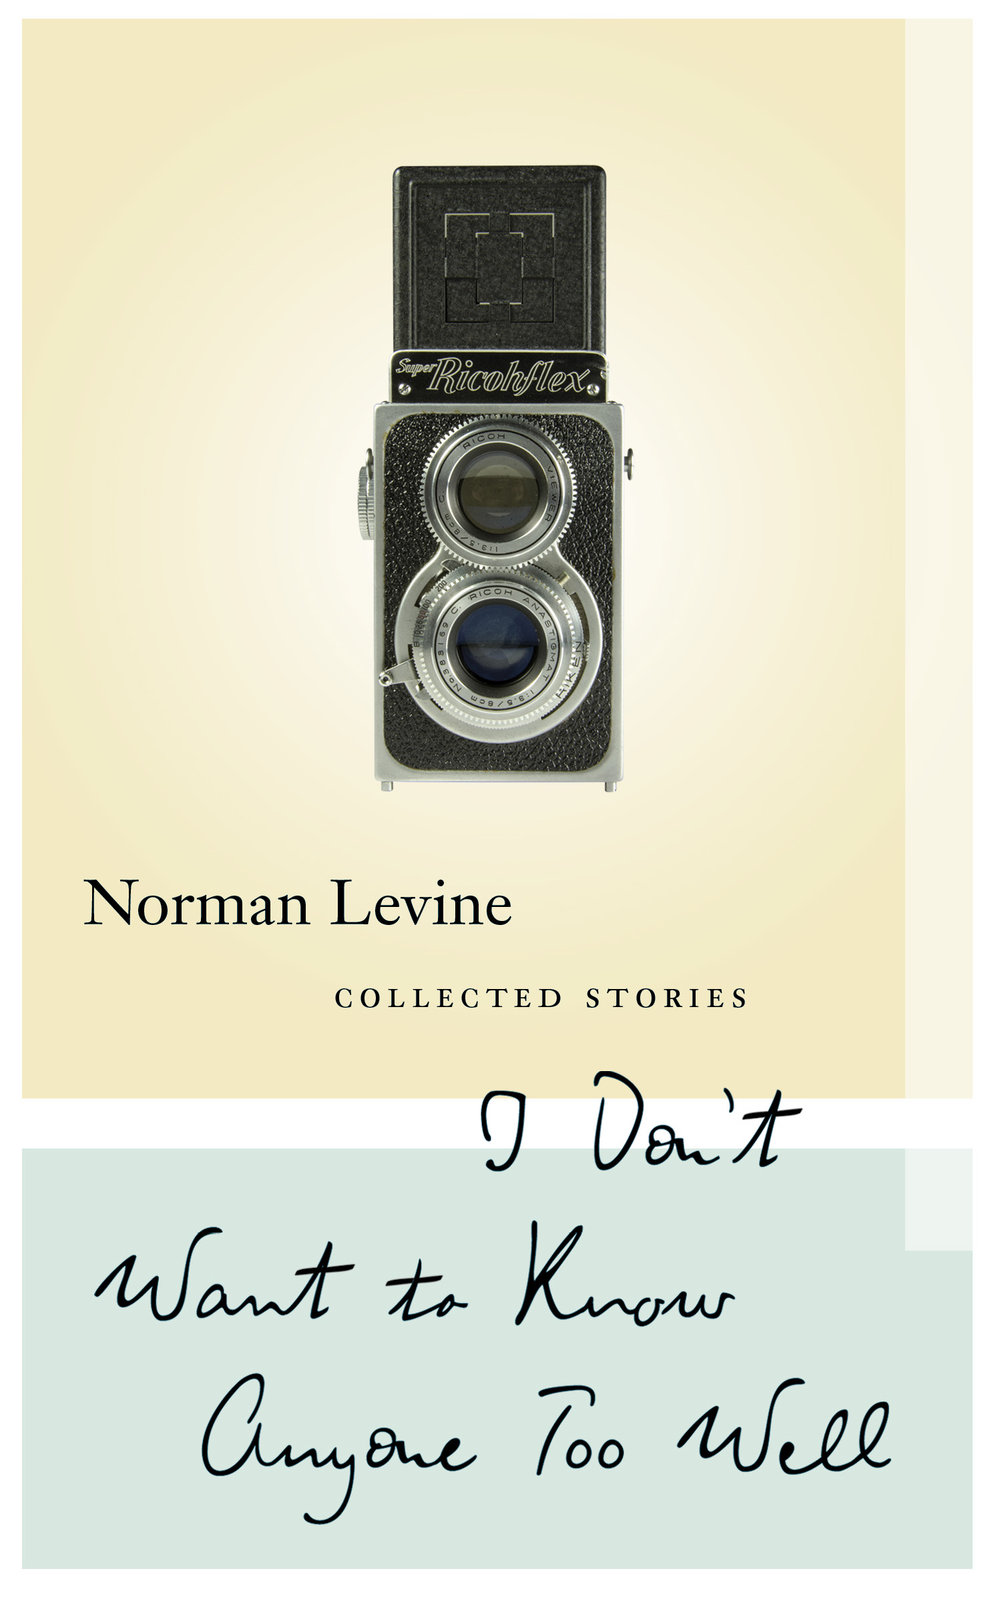 I Don't Want to Know Anyone Too Well  by Norman Levine (Biblioasis 2017)   Reviewed by David O'Meara